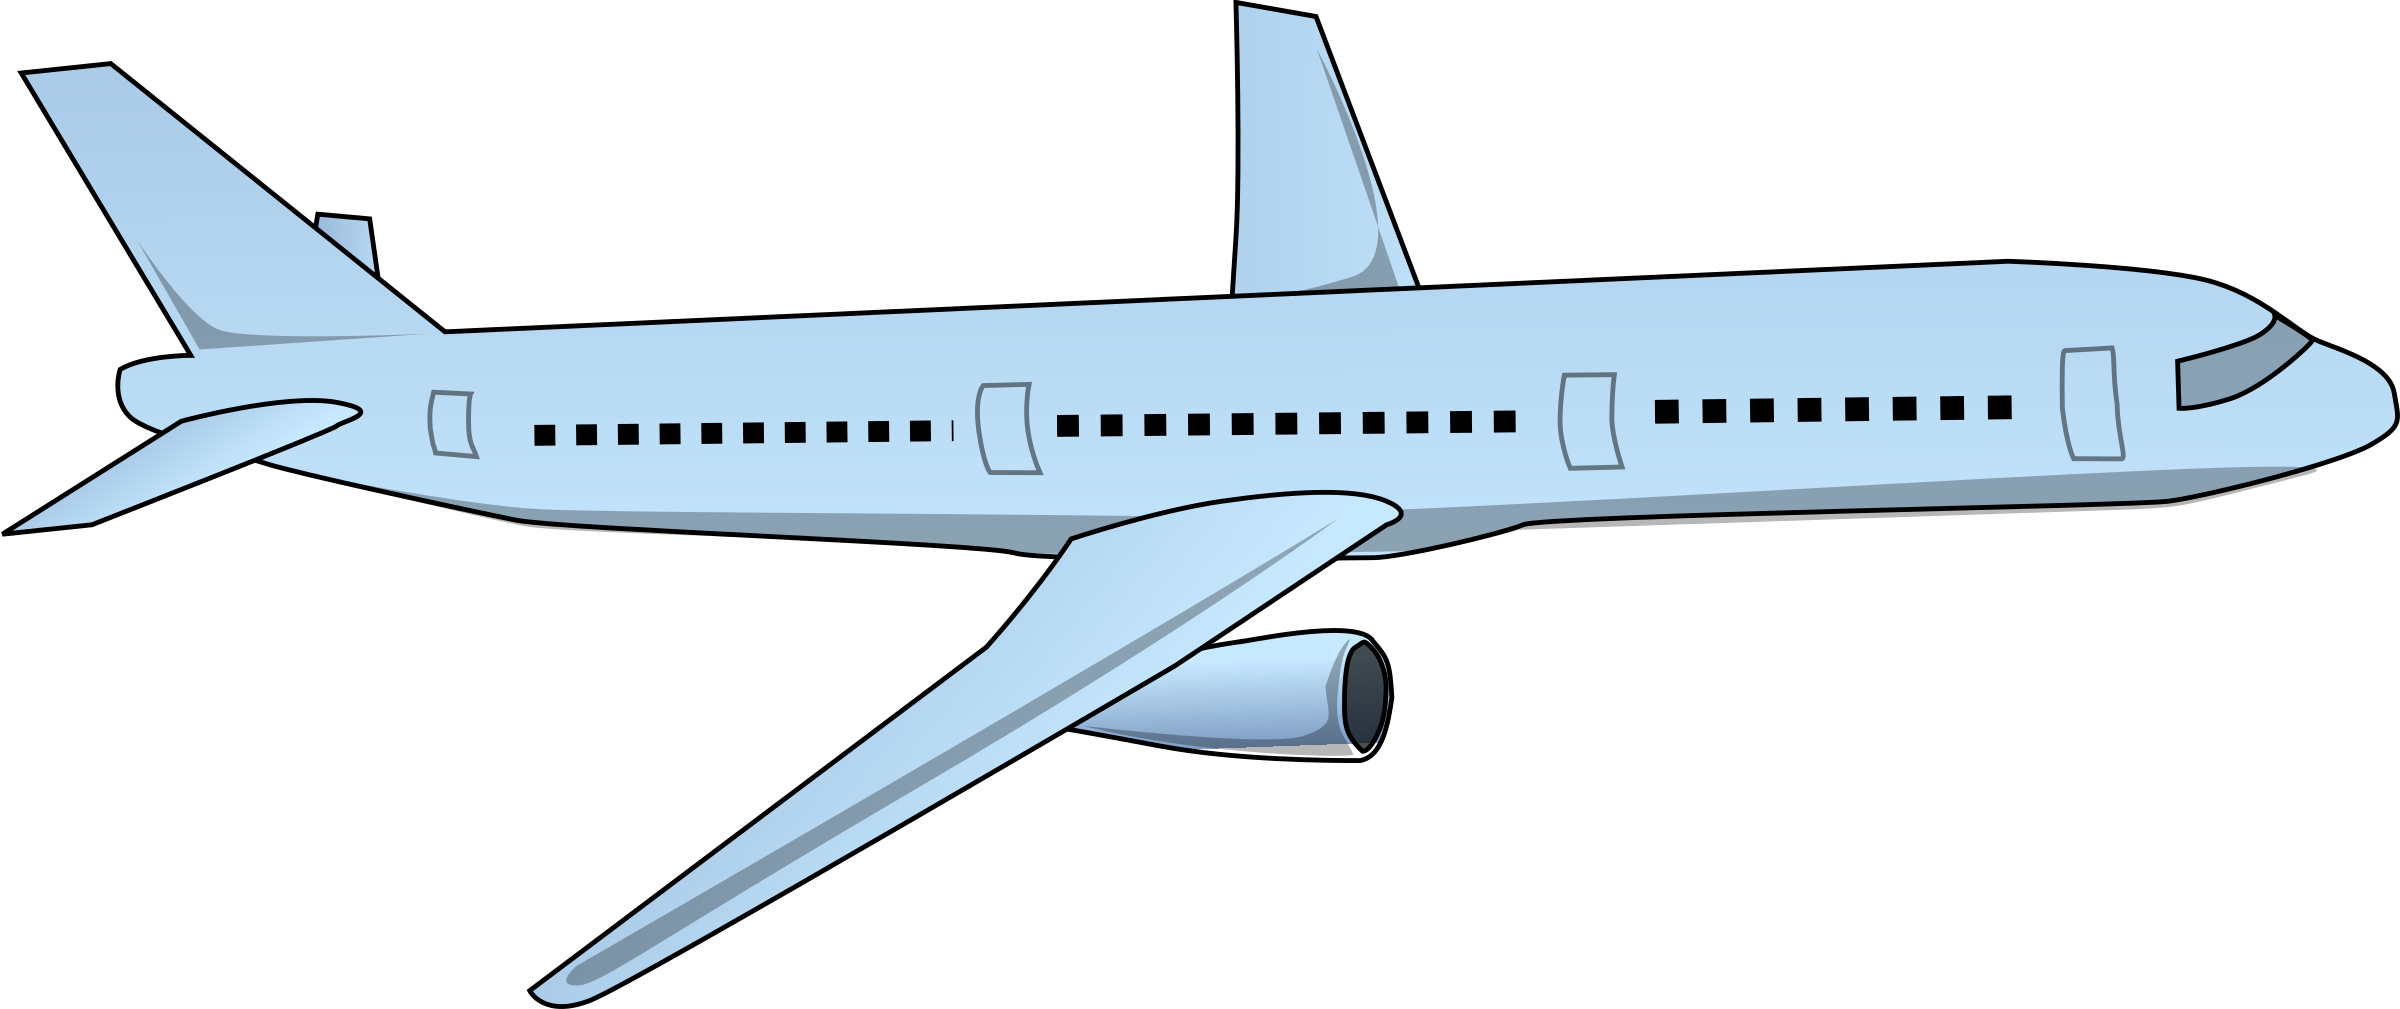 Cartoon airplane png. Air plane flying above